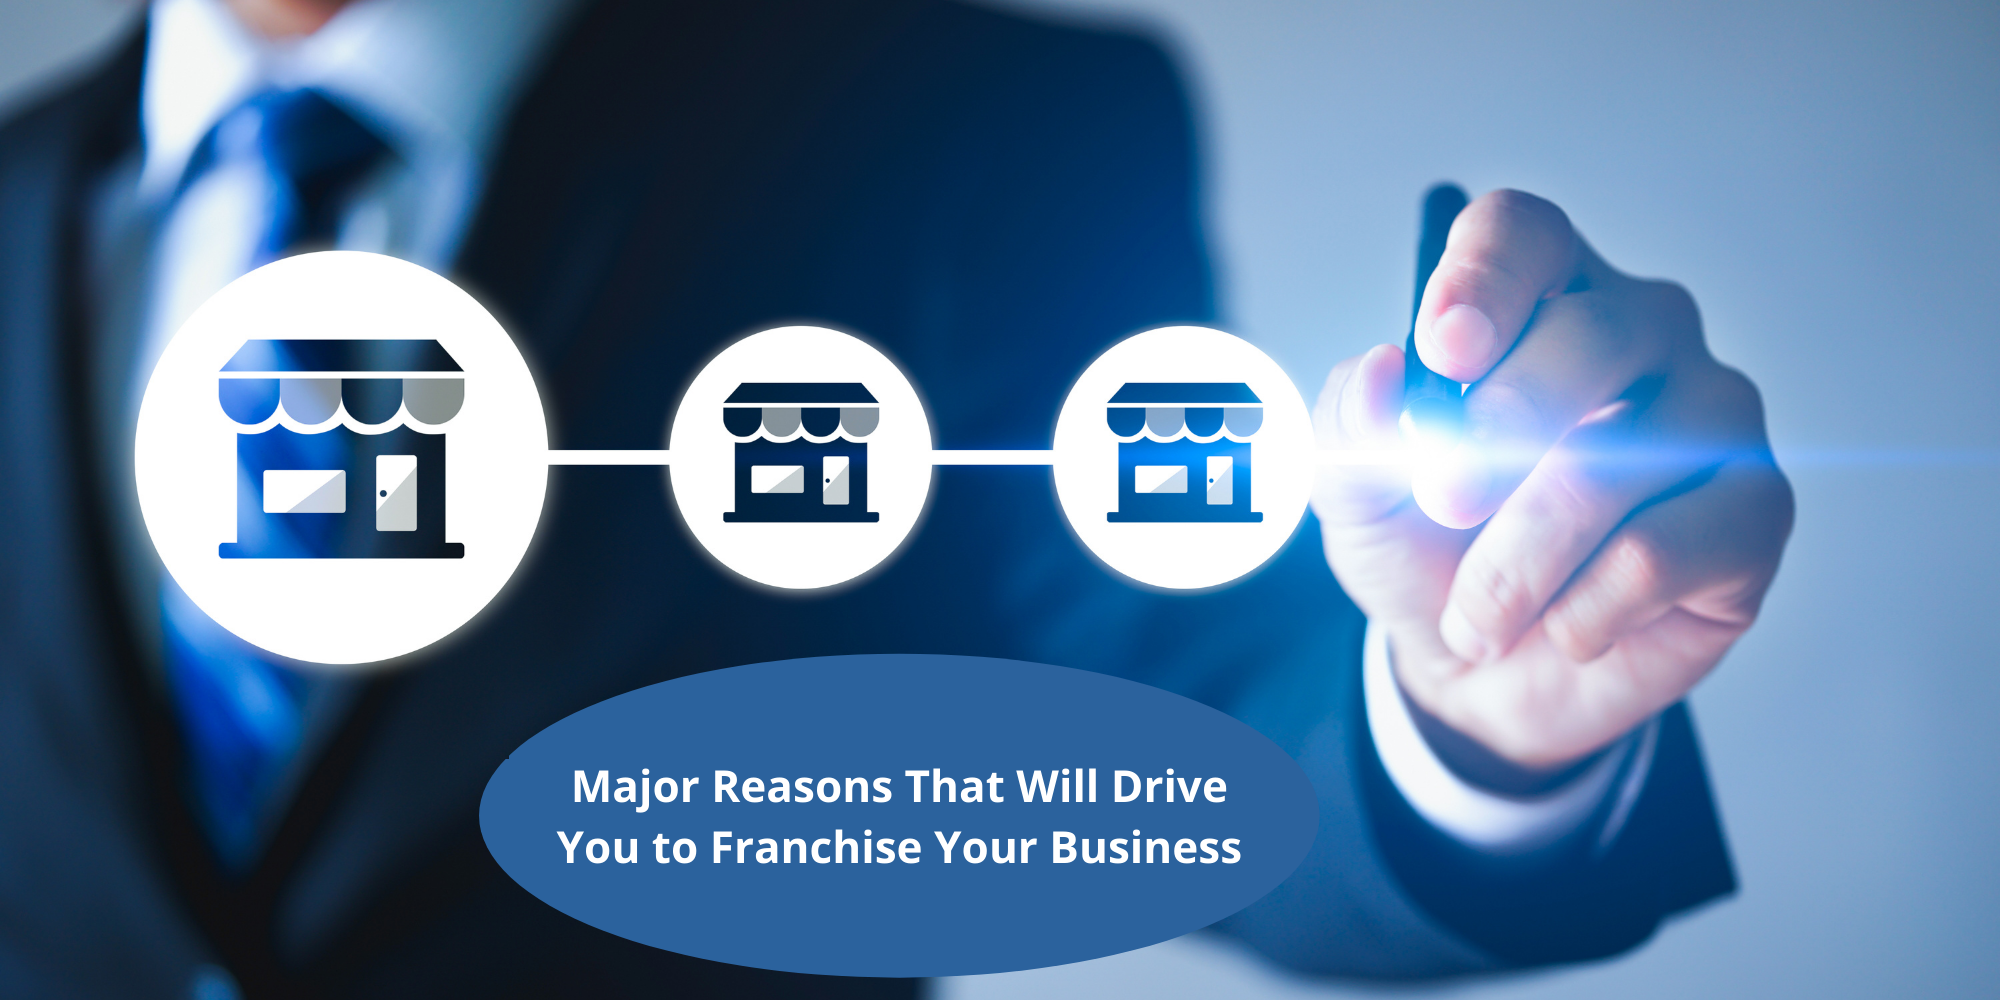 Major Reasons That Will Drive You to Franchise Your Business